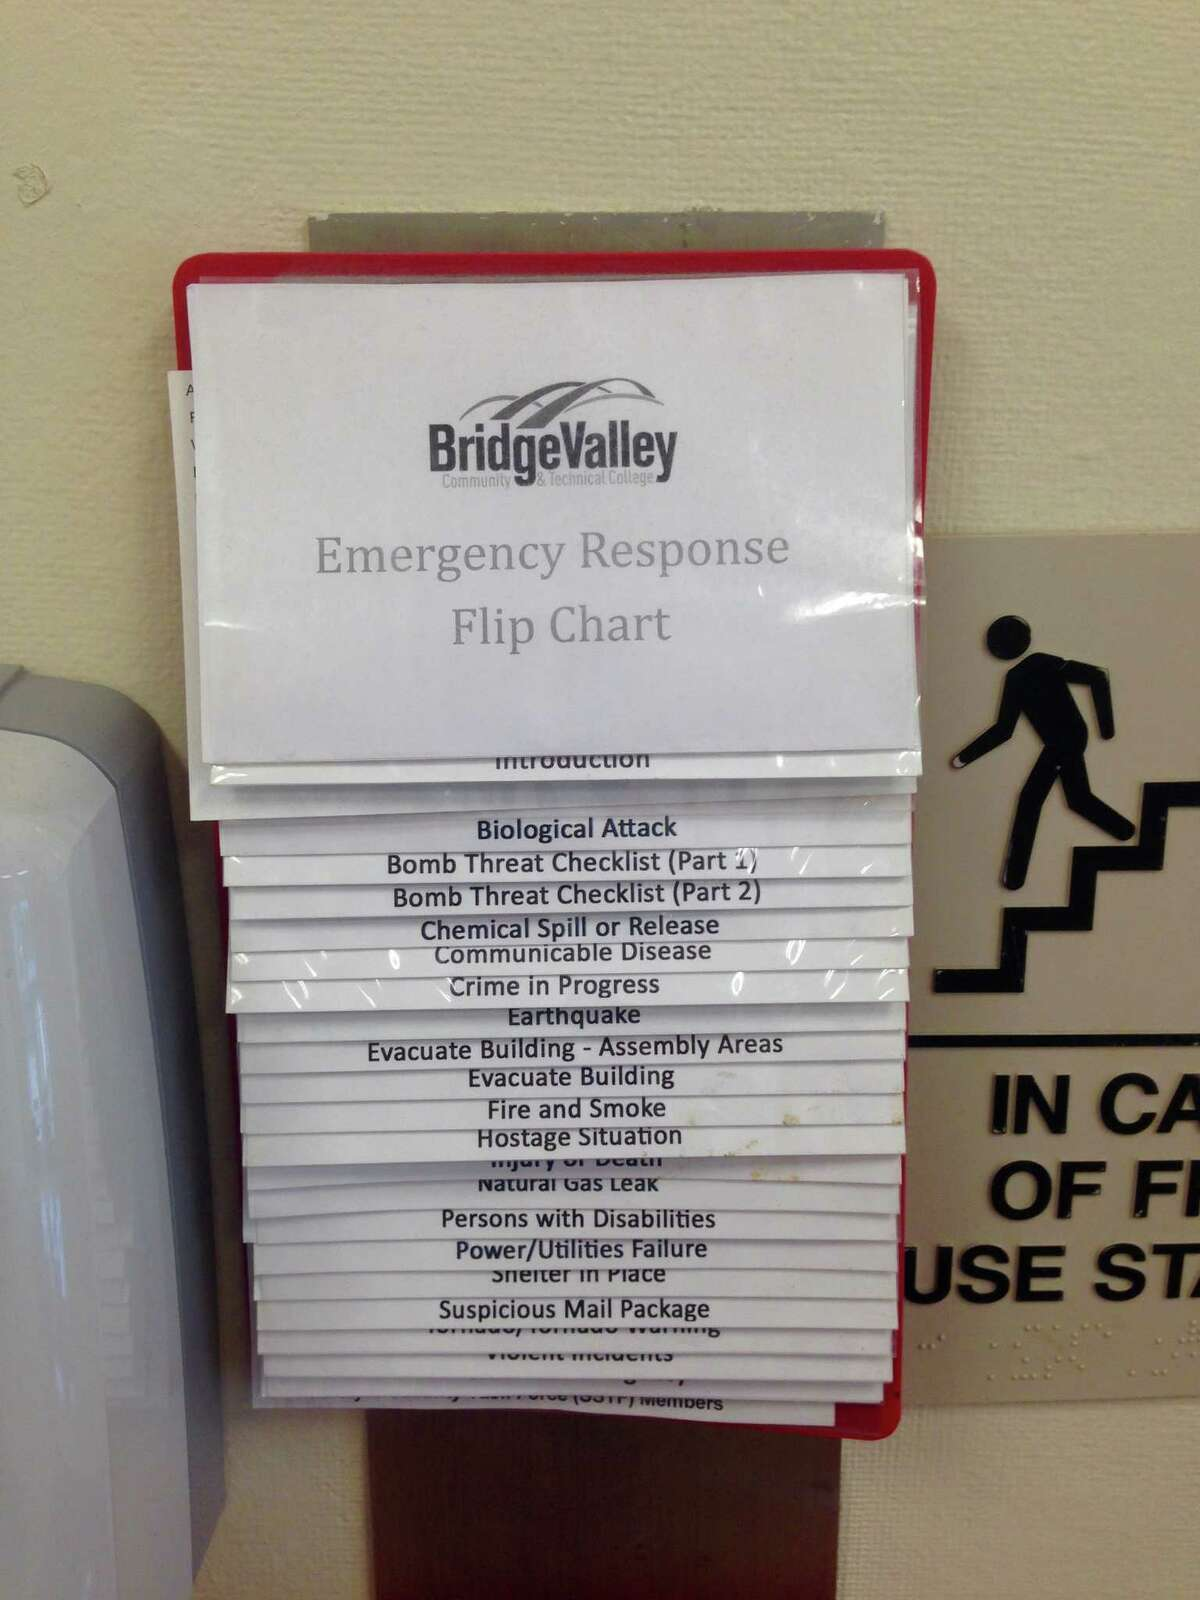 In this photo taken Friday, Oct. 9, 2015, a guide to responding to a campus emergency is displayed at BridgeValley Community and Technical College in Montgomery, W.Va. Two- and four-year college campuses across West Virginia are required to have emergency safety procedures in place, including a plan in case of an active shooter.